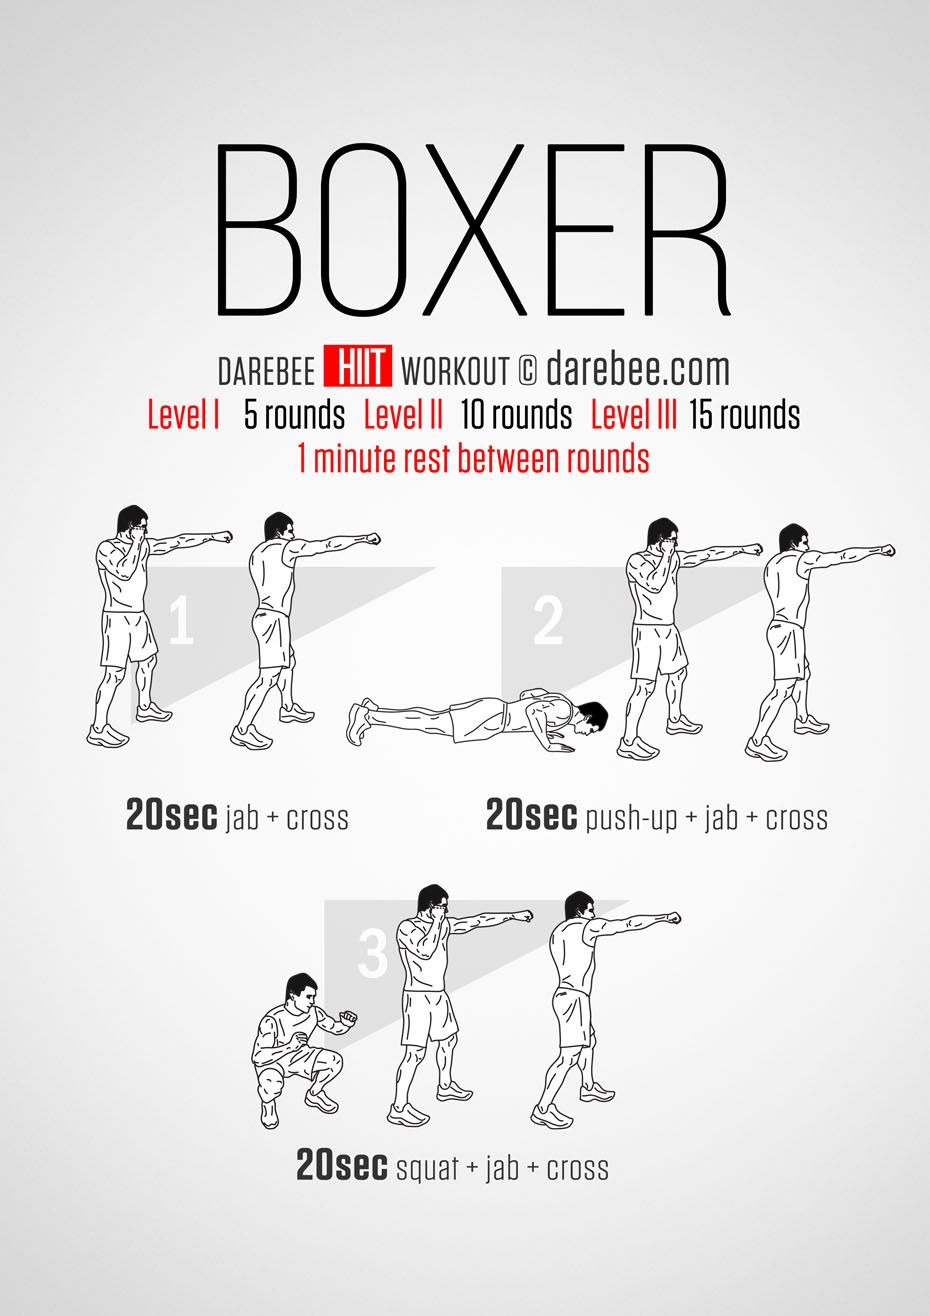 Boxer Hiit Workout Boxing Training Workout Home Boxing Workout Boxer Workout